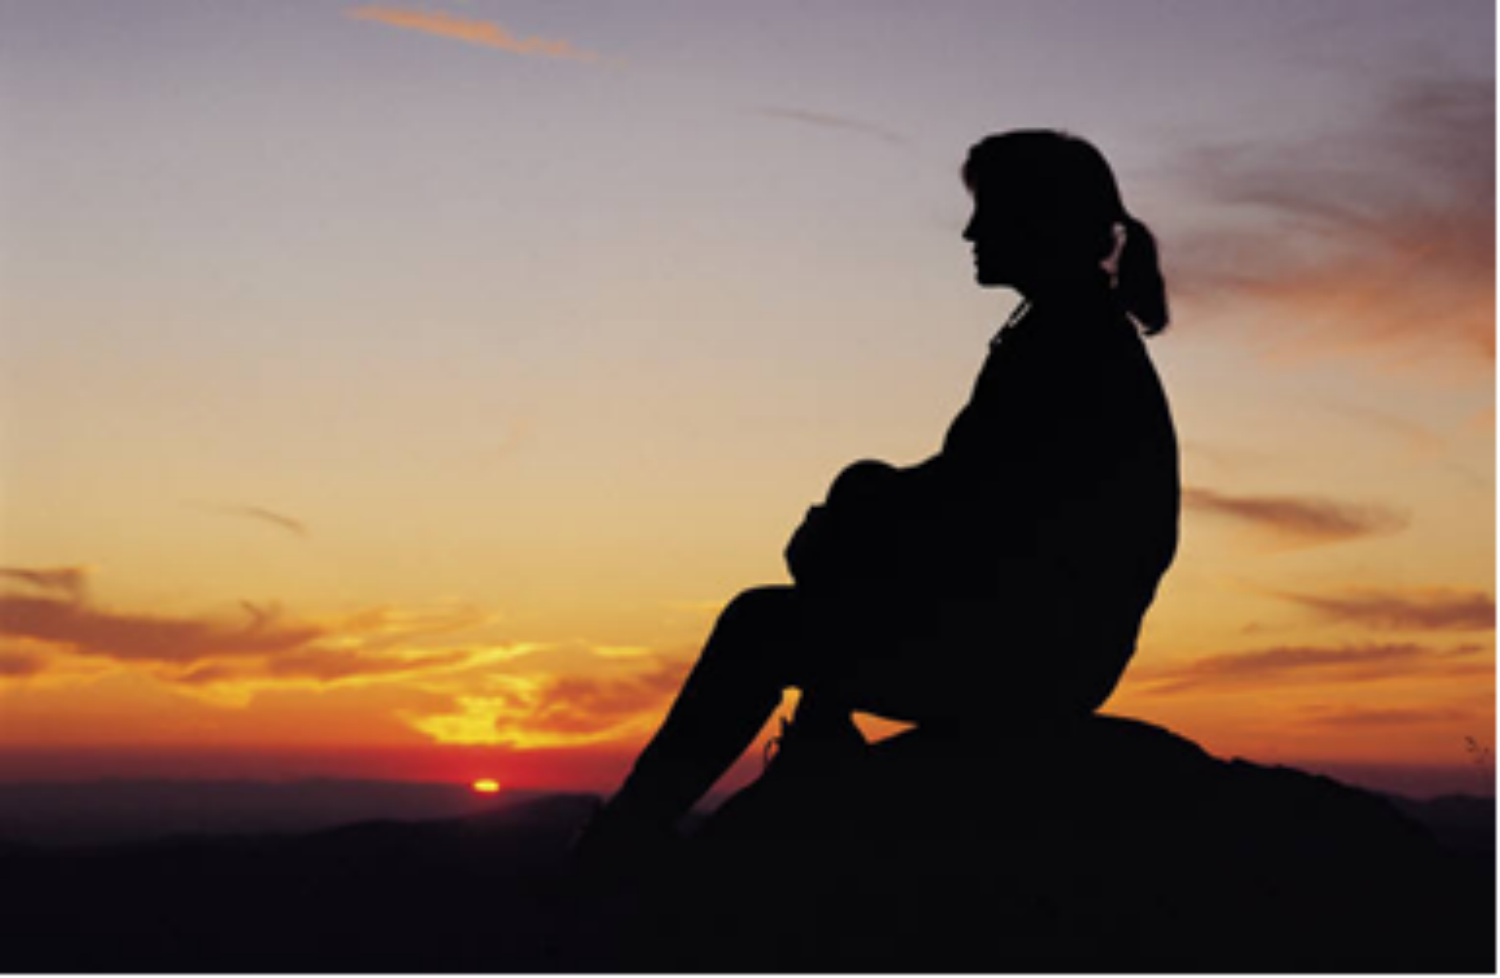 Image of person during sunset thinking. Psychological Services: All contact with staff is strictly confidential.